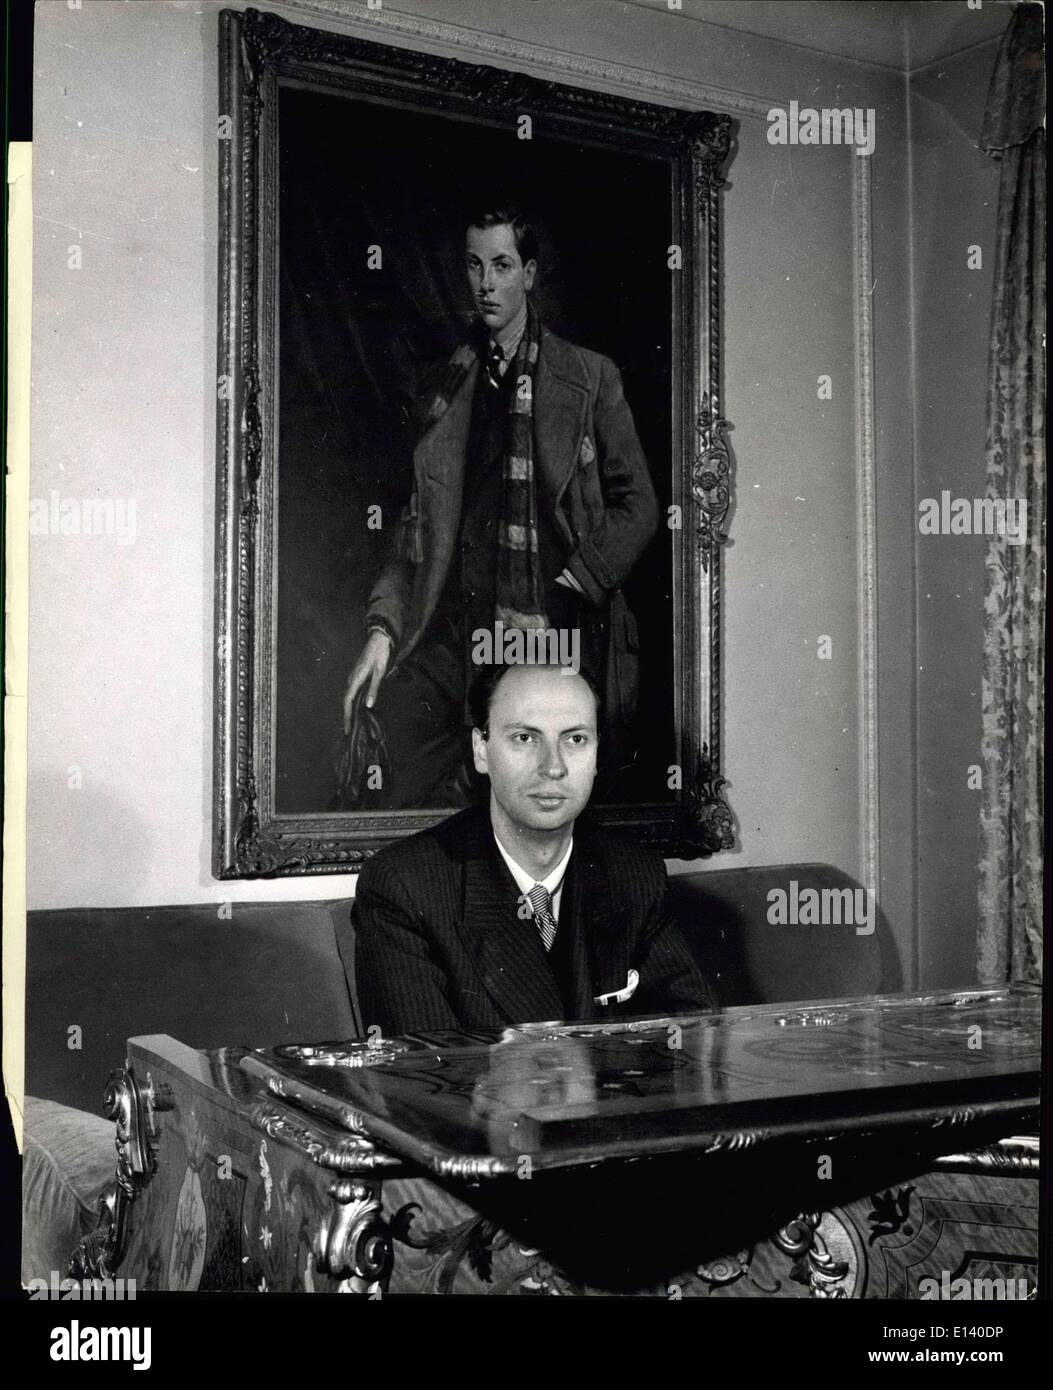 Mar. 31, 2012 - The professional pianist of the Perrage: Lord Foley at his £10,000 mother-of-pearl inlaid crested ancestral grand piano. Behind him is a painting of himself as a boy by Arthur Pan. It was one 1940. - Stock Image